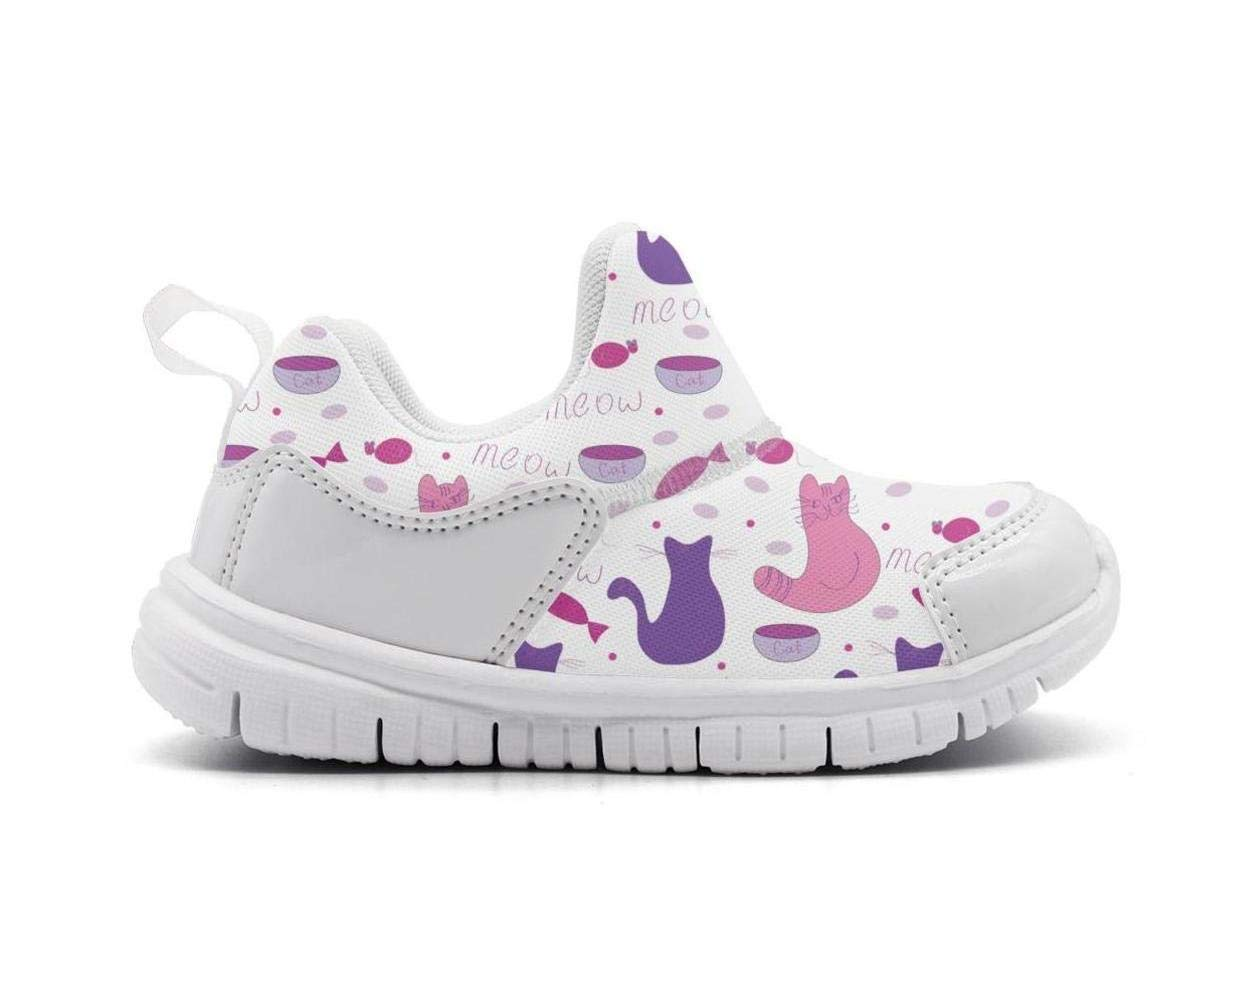 ONEYUAN Children Kitten Cats Fish Meow Kid Casual Lightweight Sport Shoes Sneakers Running Shoes